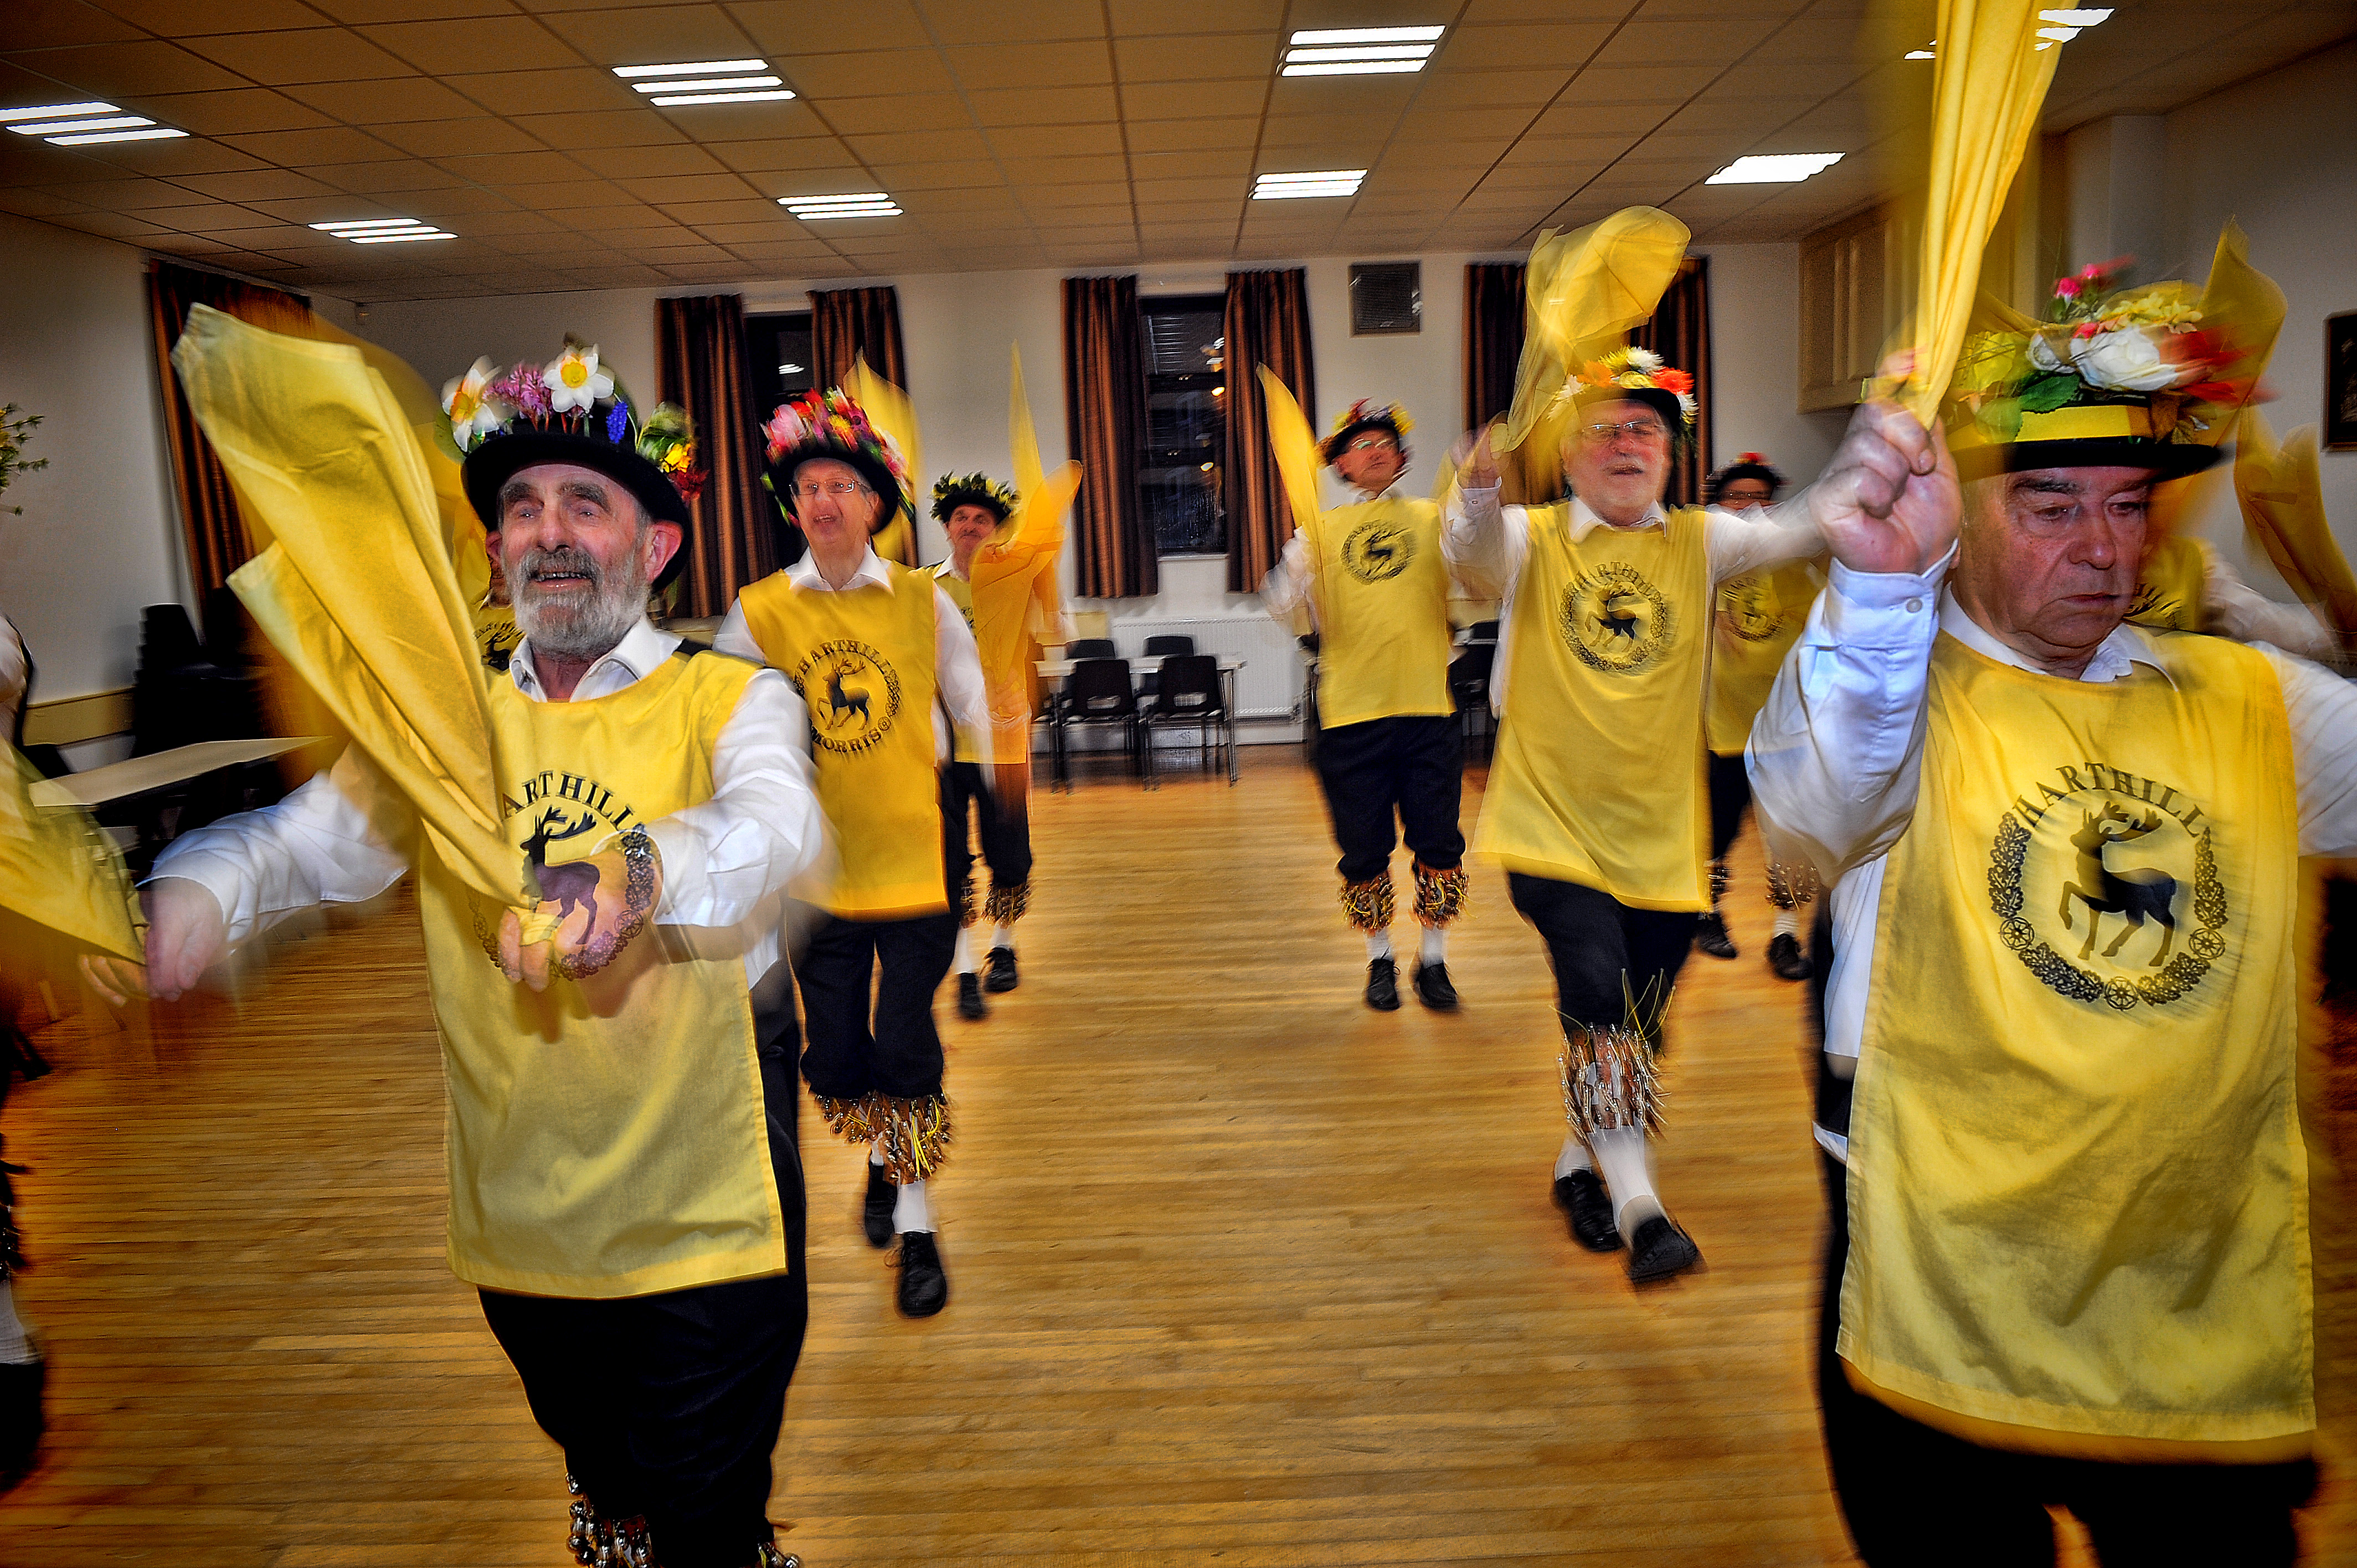 150631-03 Harthill Morris team get ready for new season